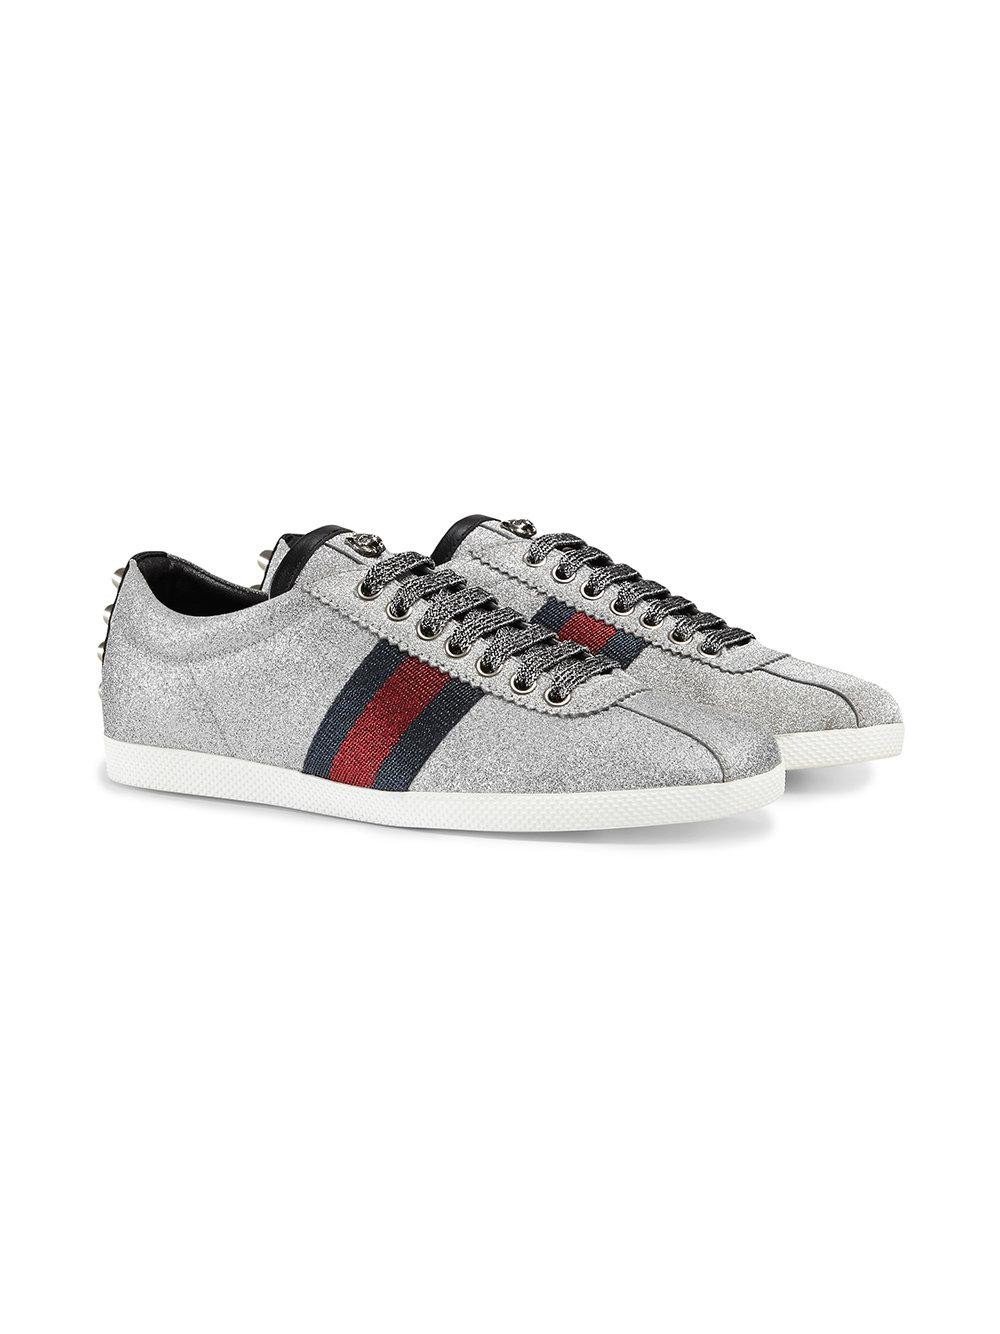 08d995224dd Lyst - Gucci Glitter Web Sneakers With Studs in Gray - Save 5%